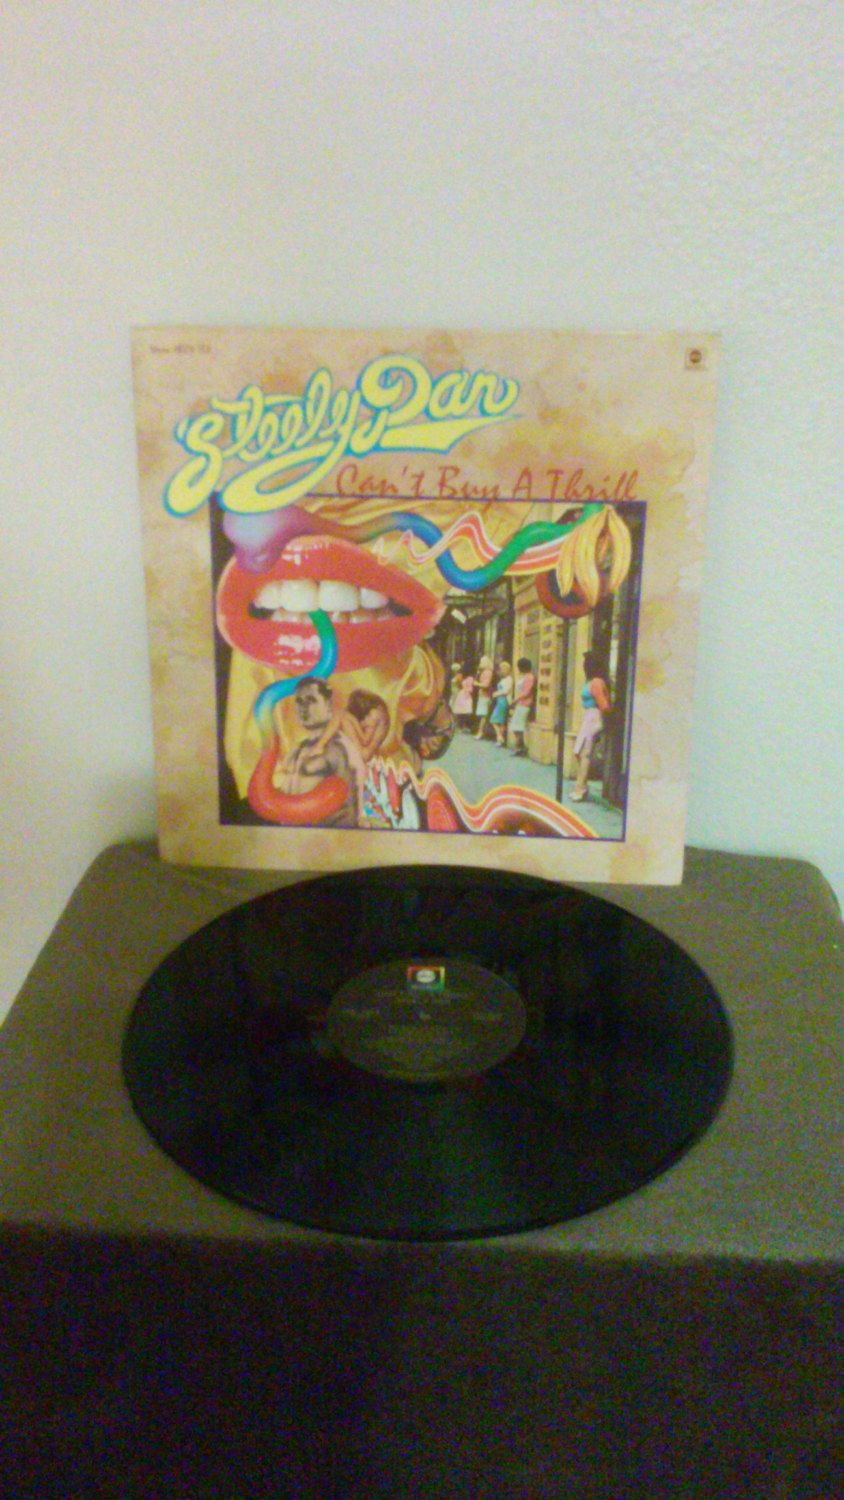 Steely Dan vinyl record - Cant buy a thrill  - Original - Vintage Vinyl record LP in Excellent Plus Condition